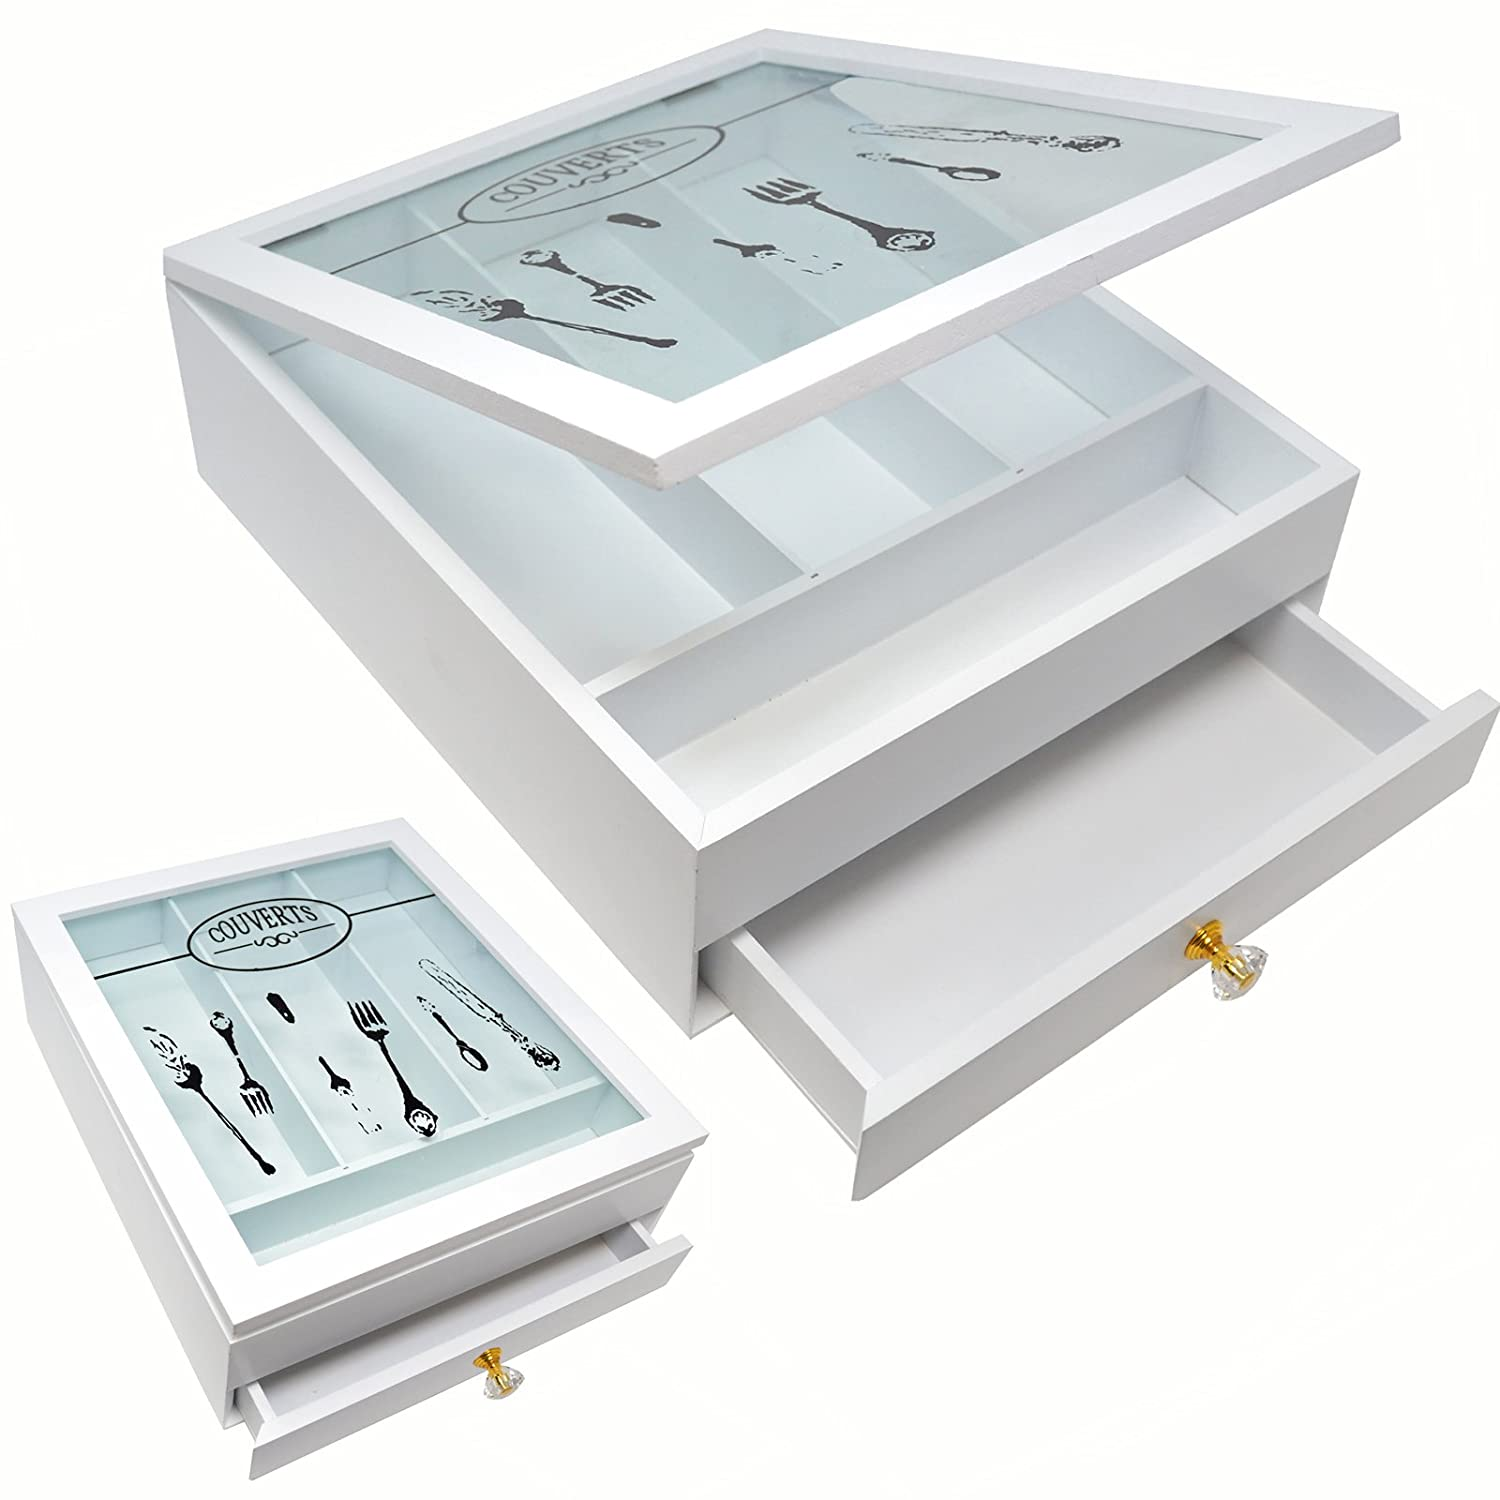 CUTLERY HOLDER TRAY ORGANISER BOX GLASS 4 COMPARTMENTS + DRAWER KITCHEN STORAGE PRIMA